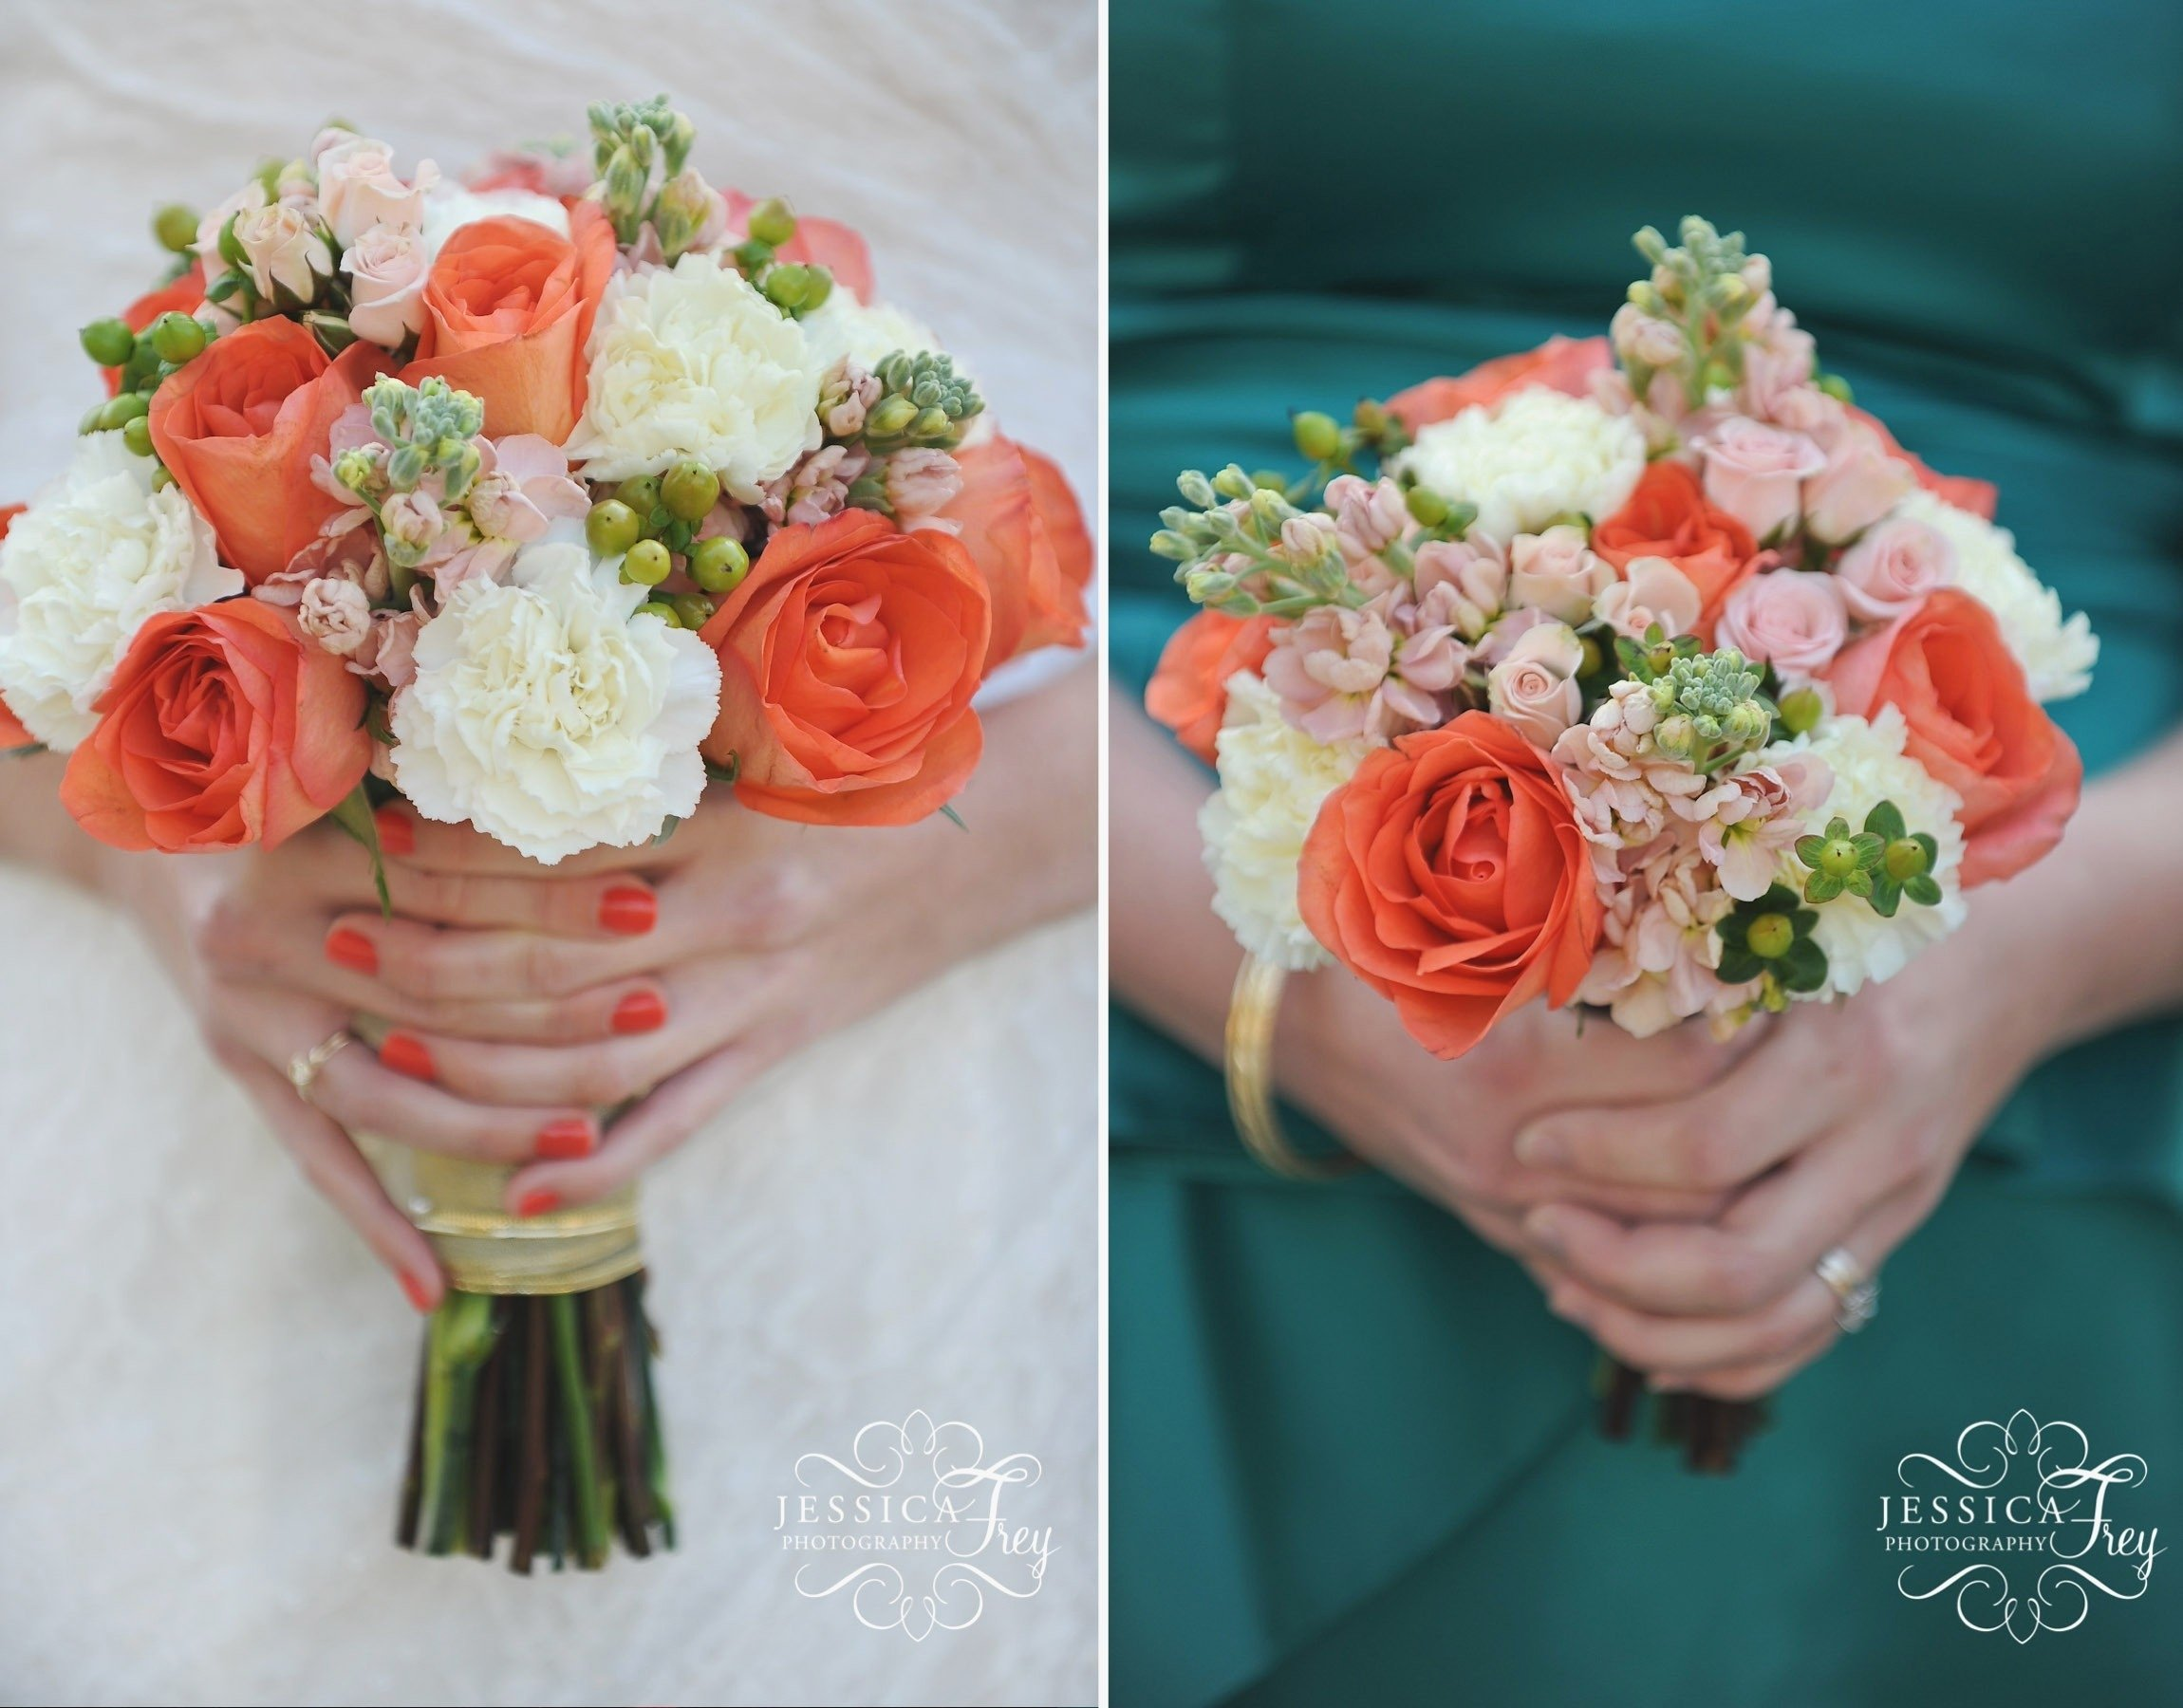 10 Trendy Coral And Teal Wedding Ideas teal and coral wedding ideas wedding ideas uxjj 2020